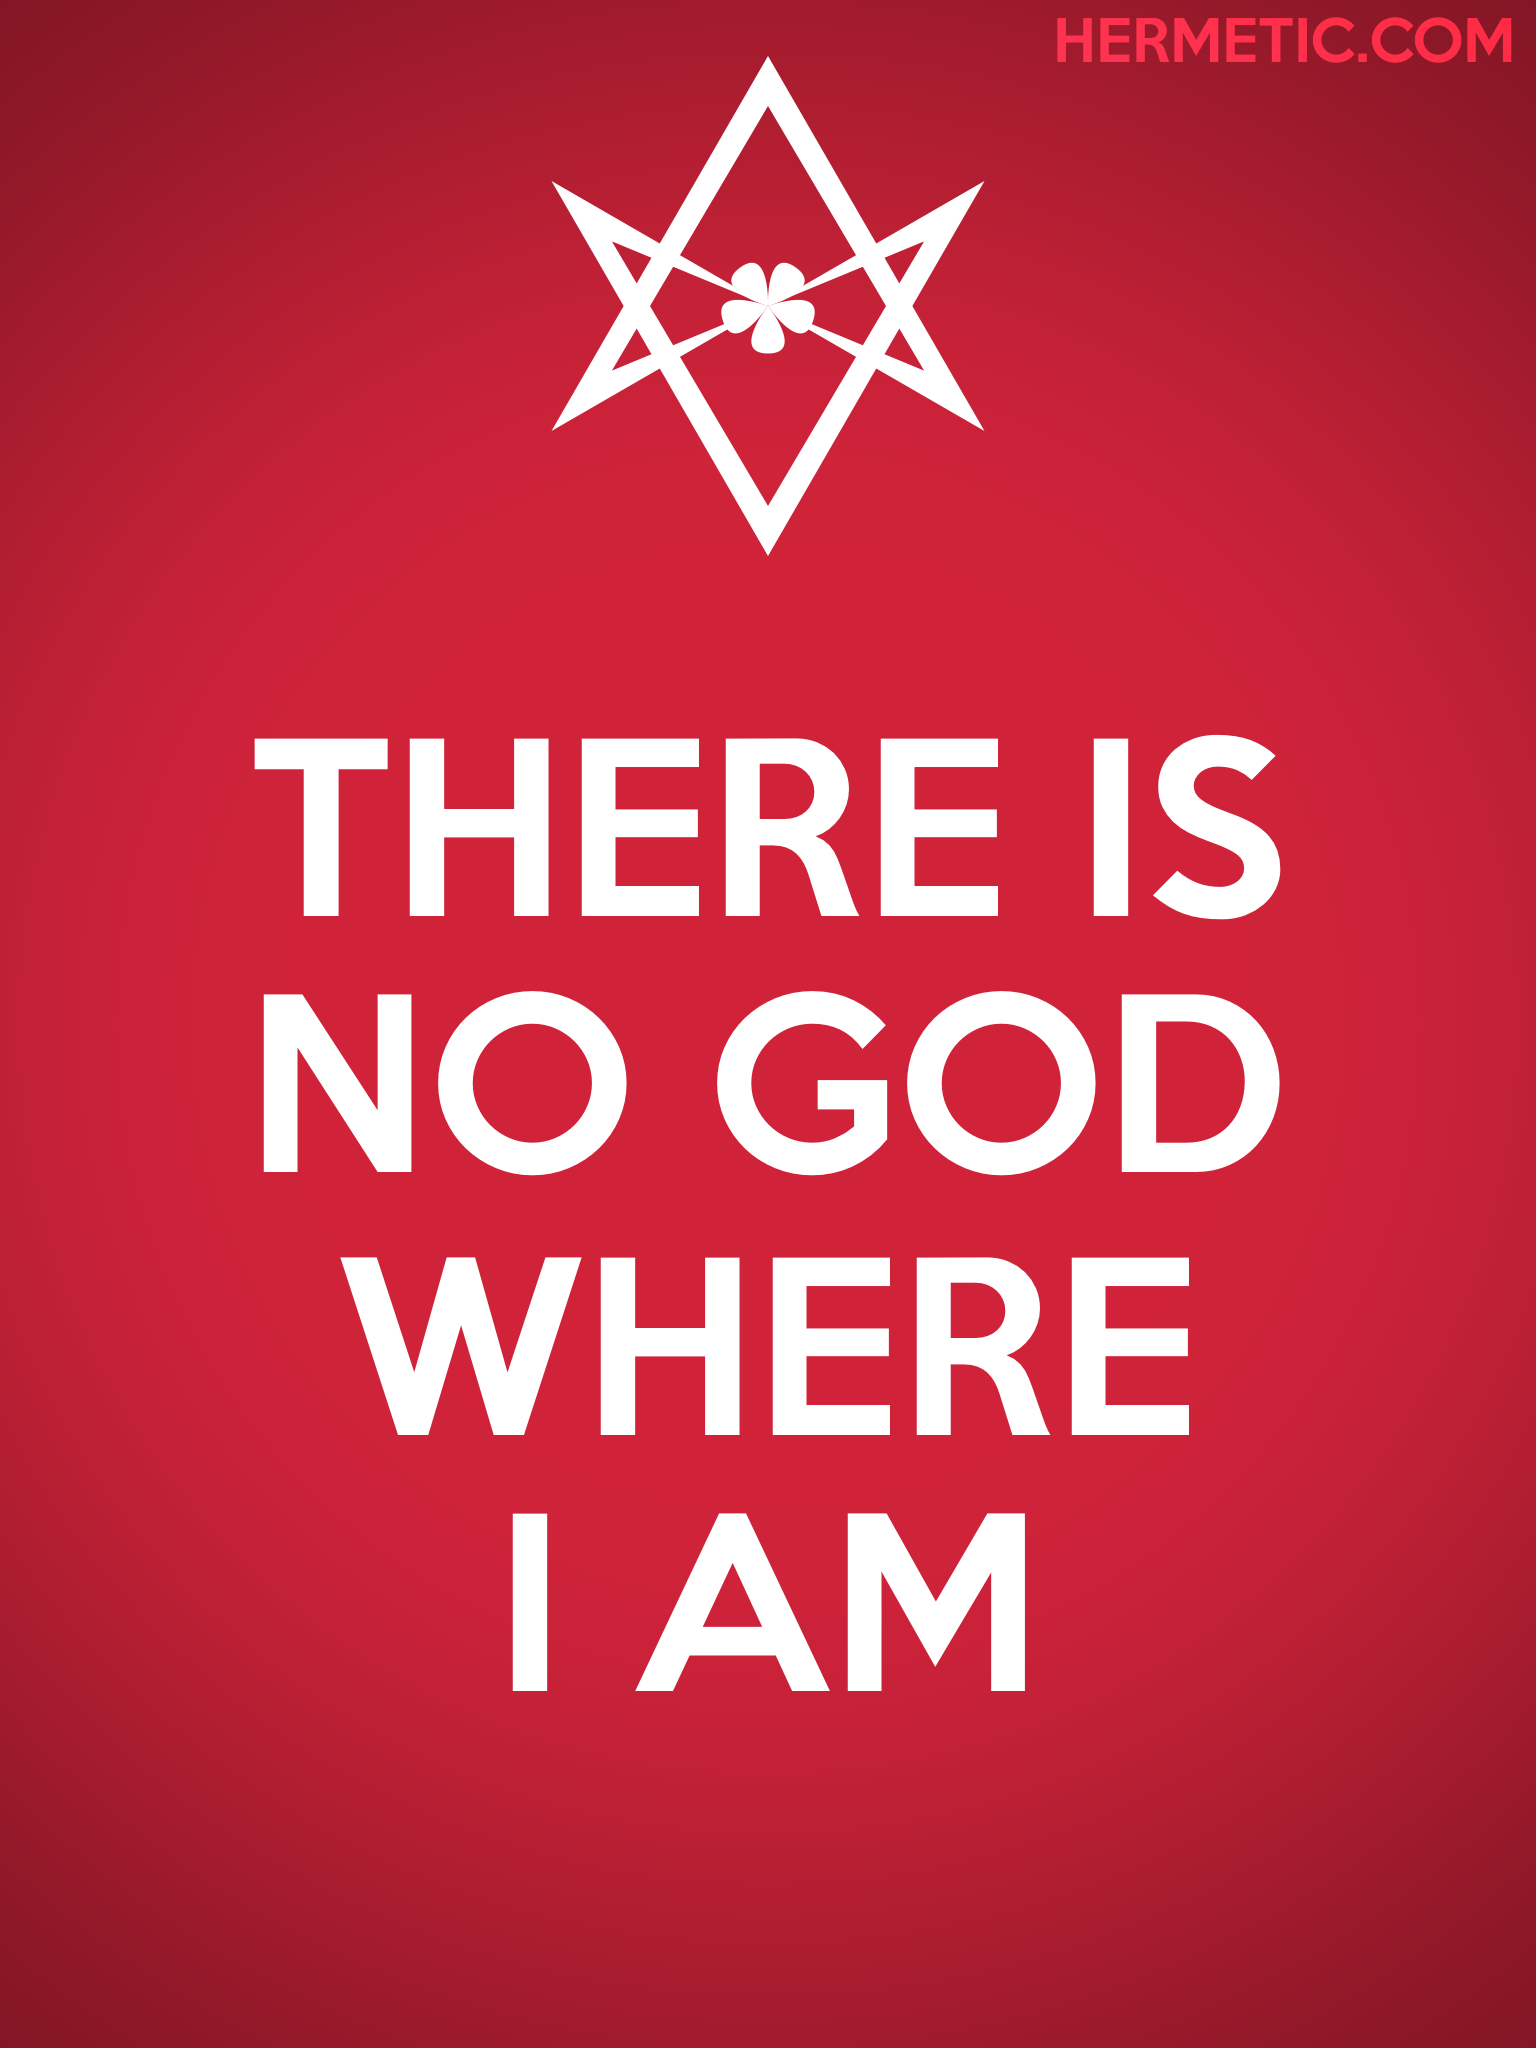 Village NO GOD WHERE I AM Propaganda Poster from Hermetic Library Ministry of Information